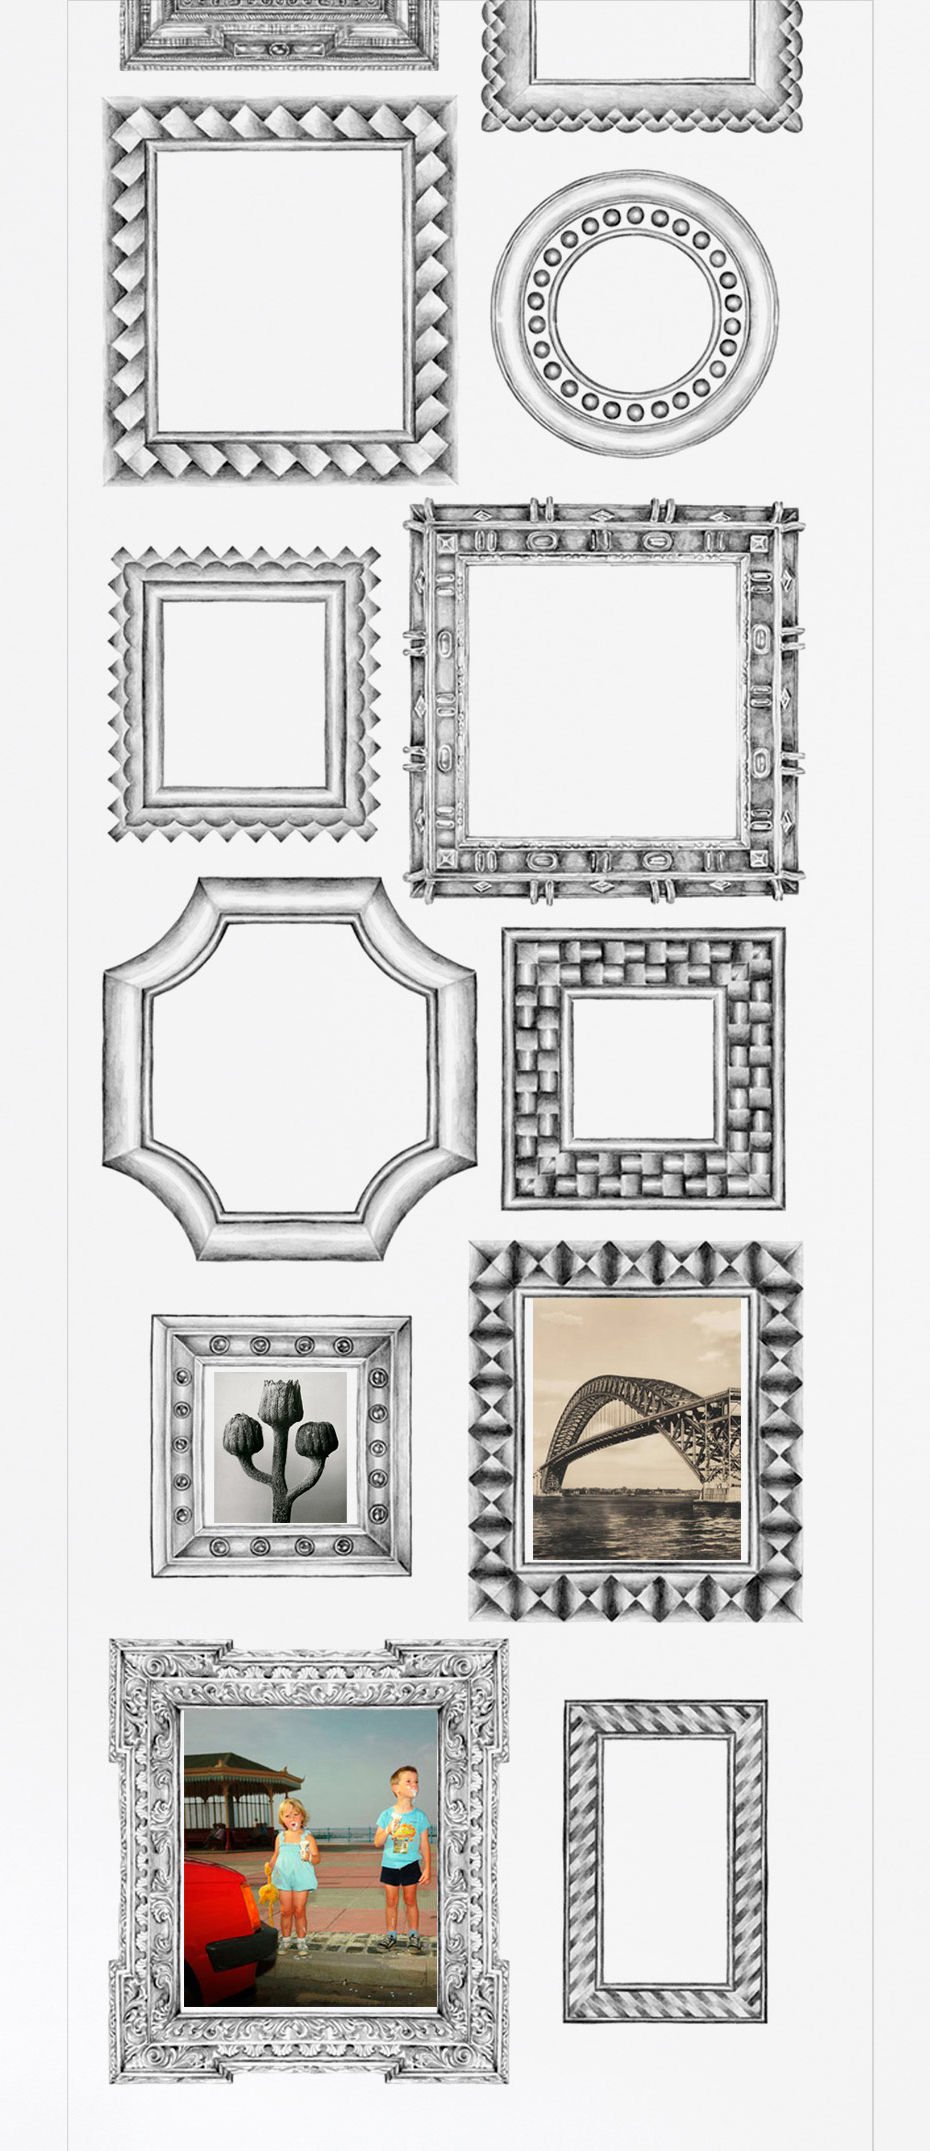 Decoration - Wallpaper & Wall Stickers - Cadres verticaux Wallpaper - 1 panel by Domestic -  - Intisse paper